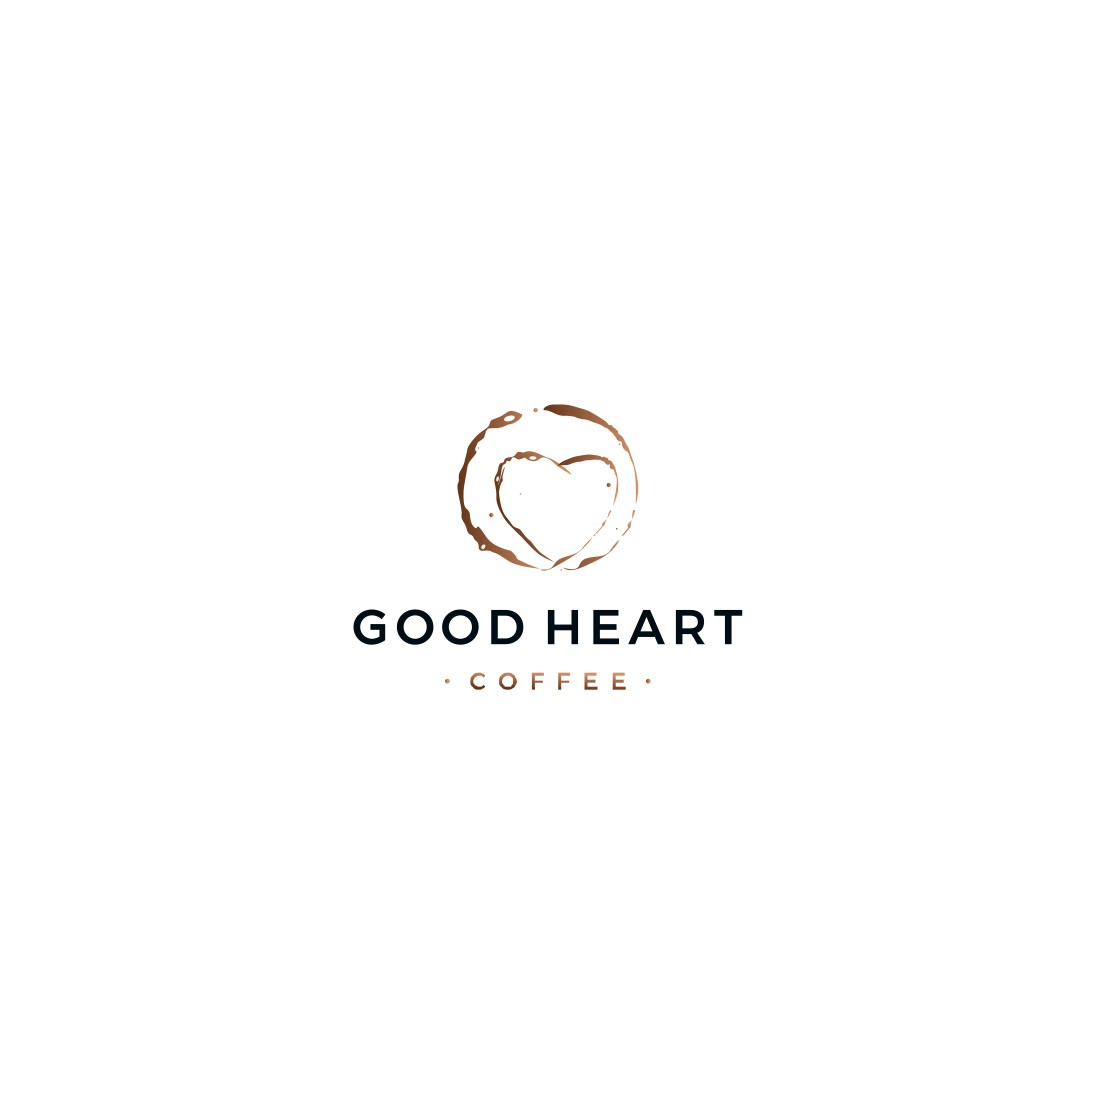 Coffee Bag Logo that shows kindness and coffee